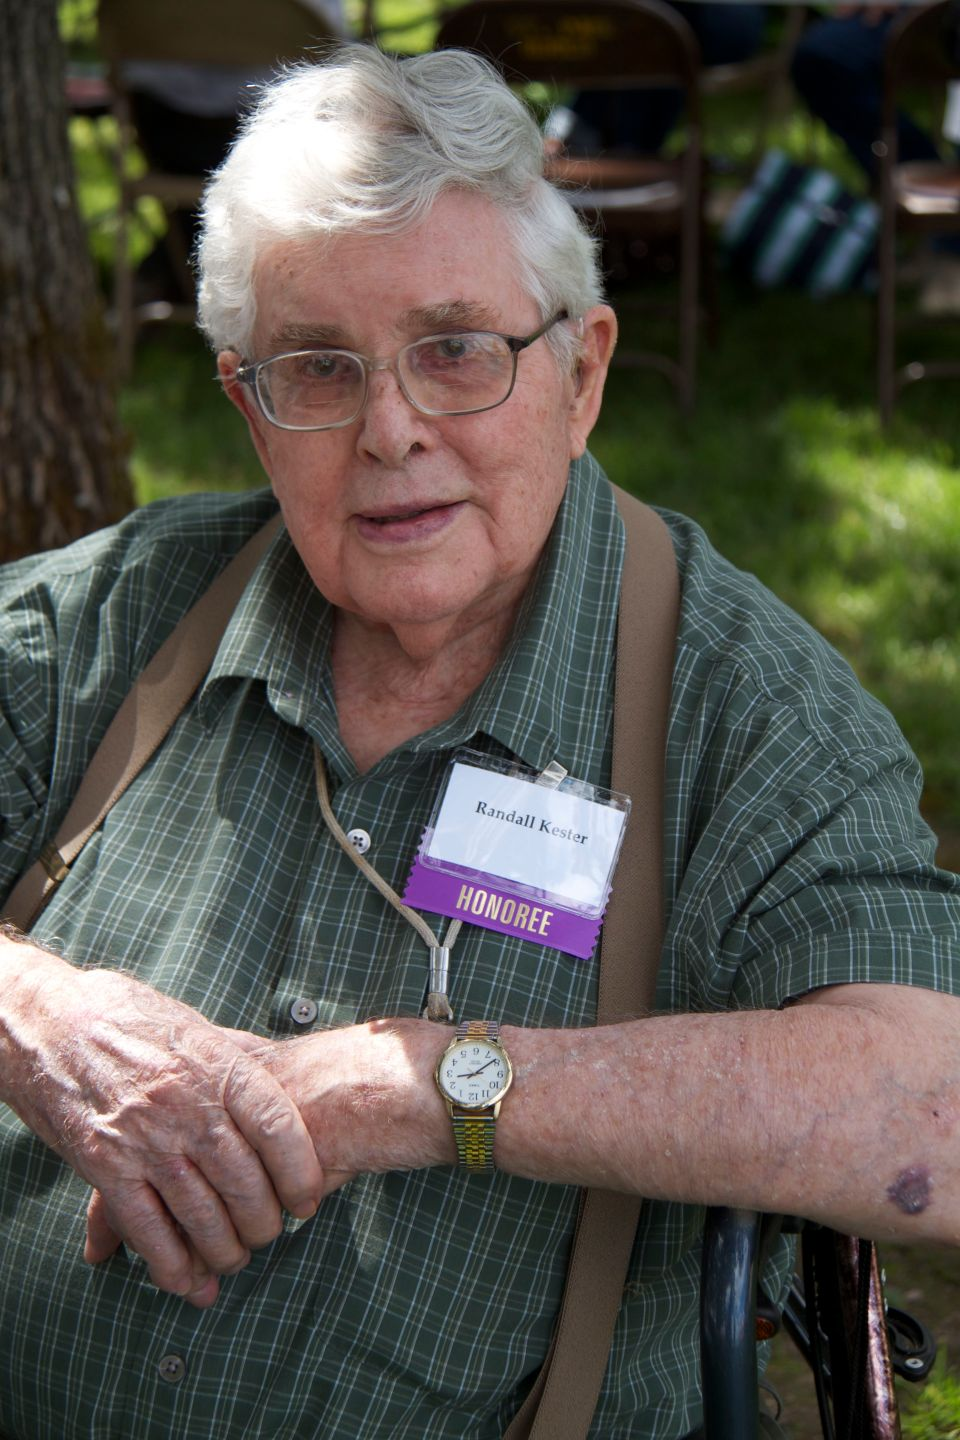 Randall Kester, 2004 Lifetime Service Award Recipient